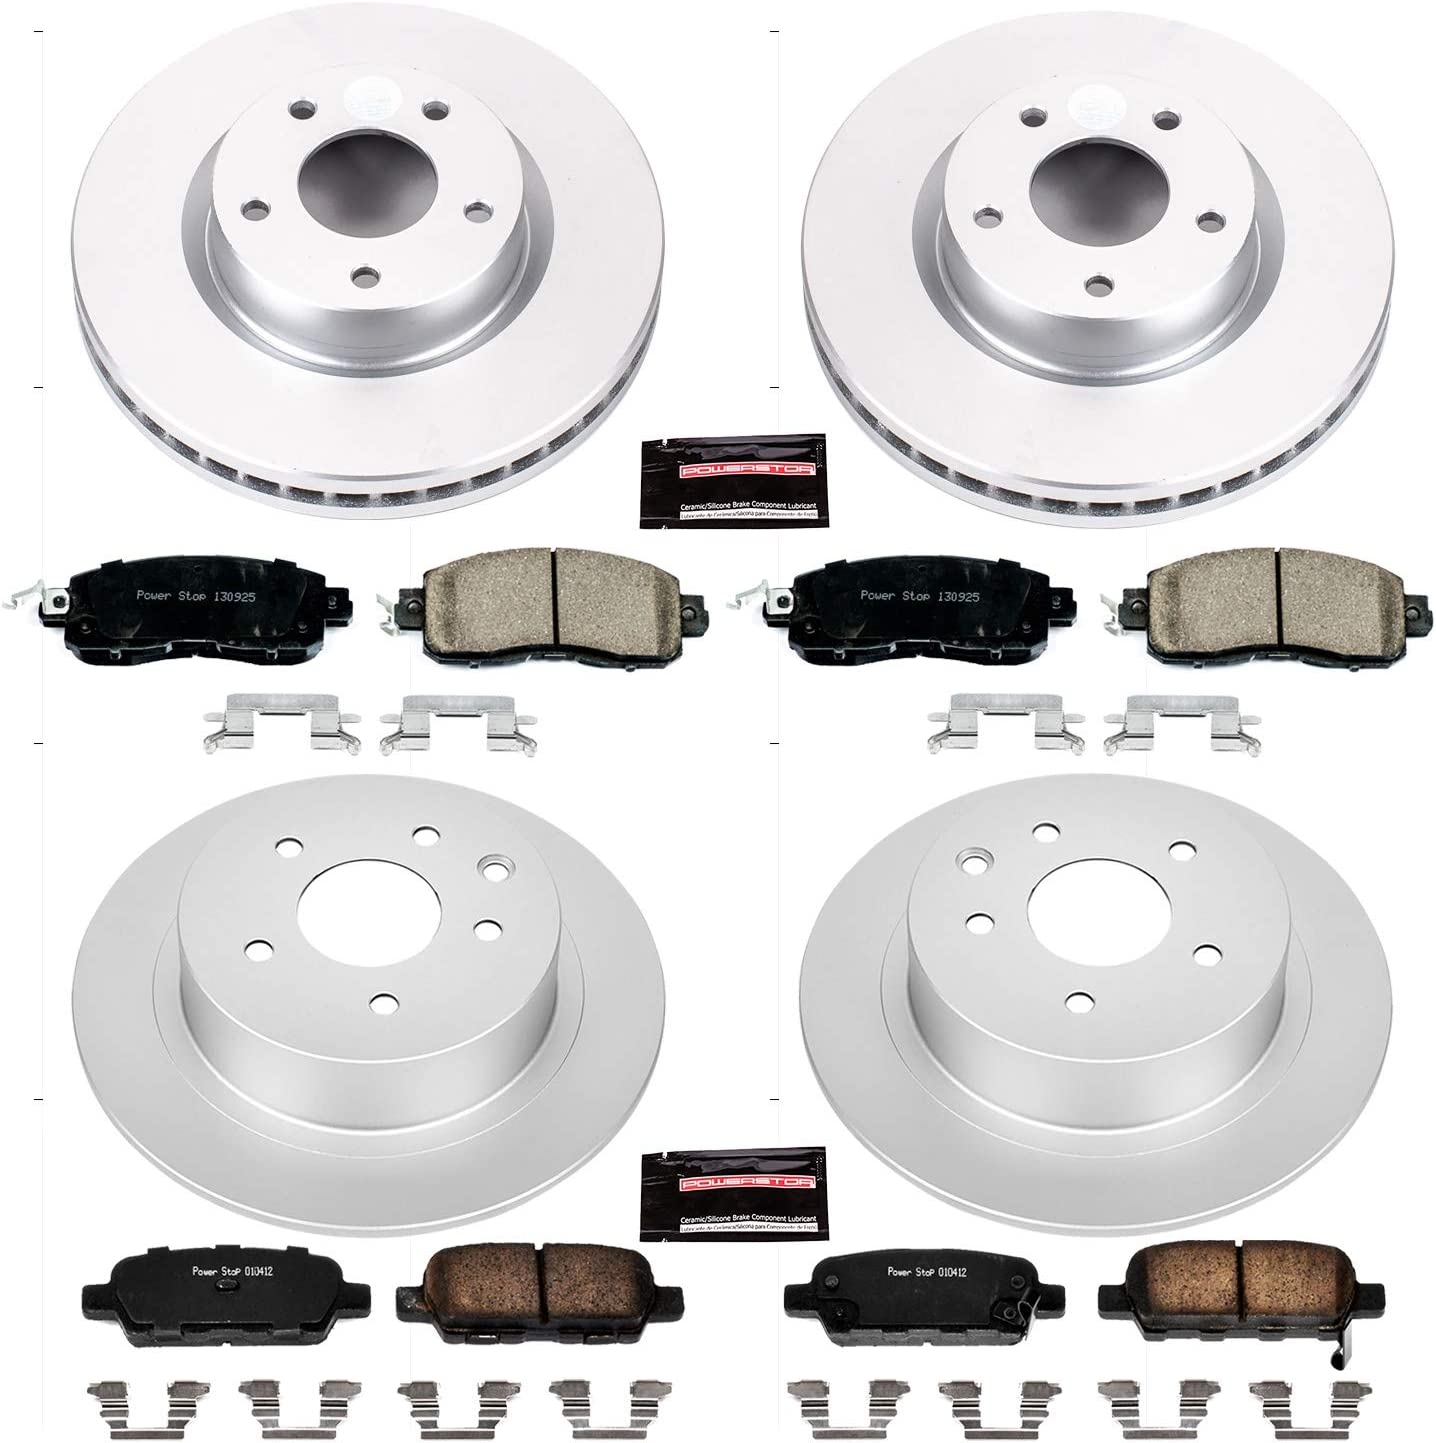 Power Stop CRK1921,Z17 Coated Rotor Front and Rear Brake Kit-Coated Brake Rotors /& Ceramic Brake Pads